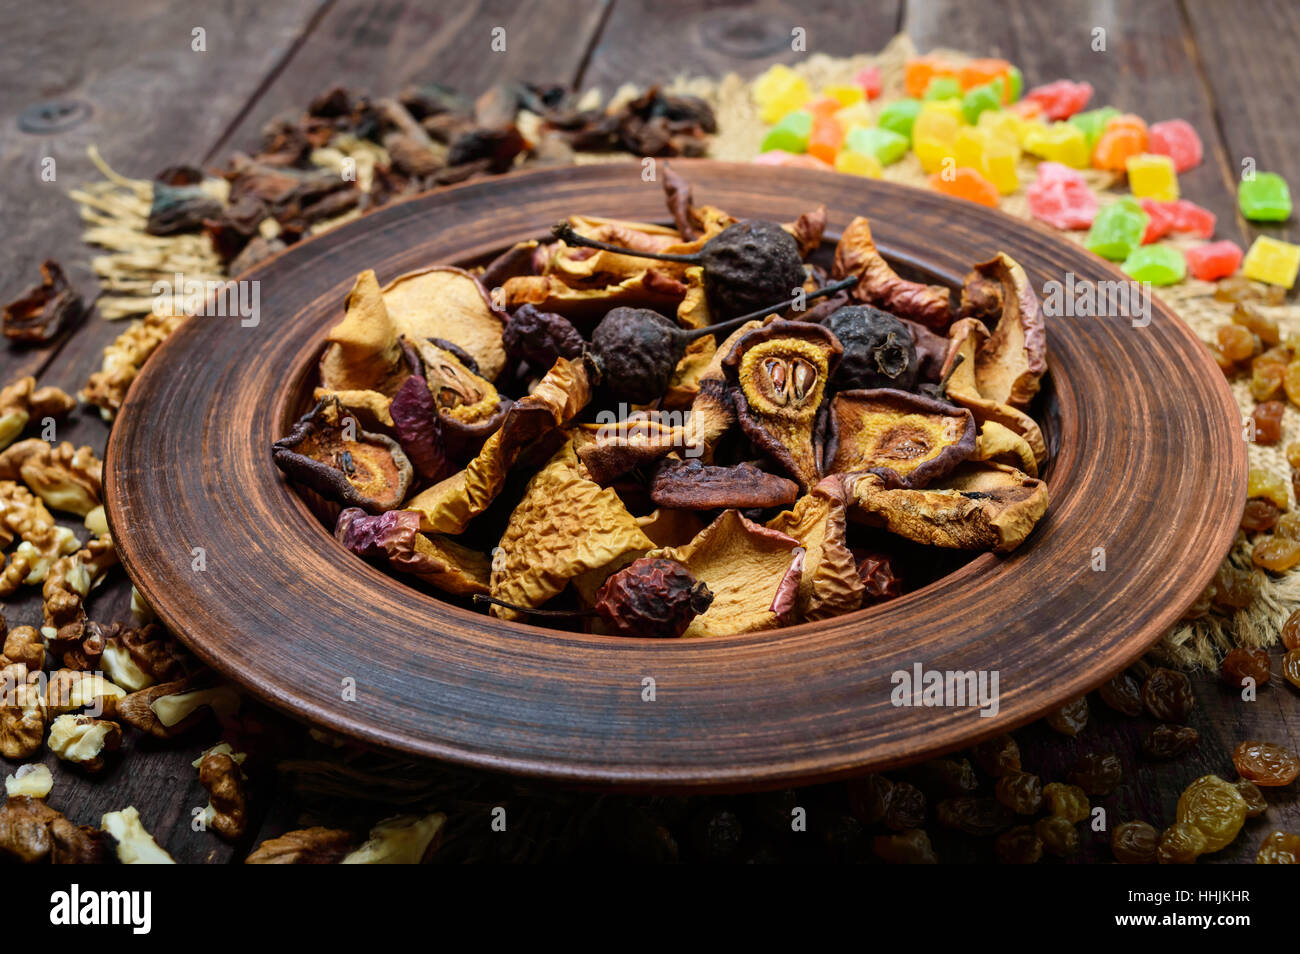 Dried fruit (apples, pears, apricots), berries, raisins and nuts in a bowl on dark wooden background. Close up - Stock Image